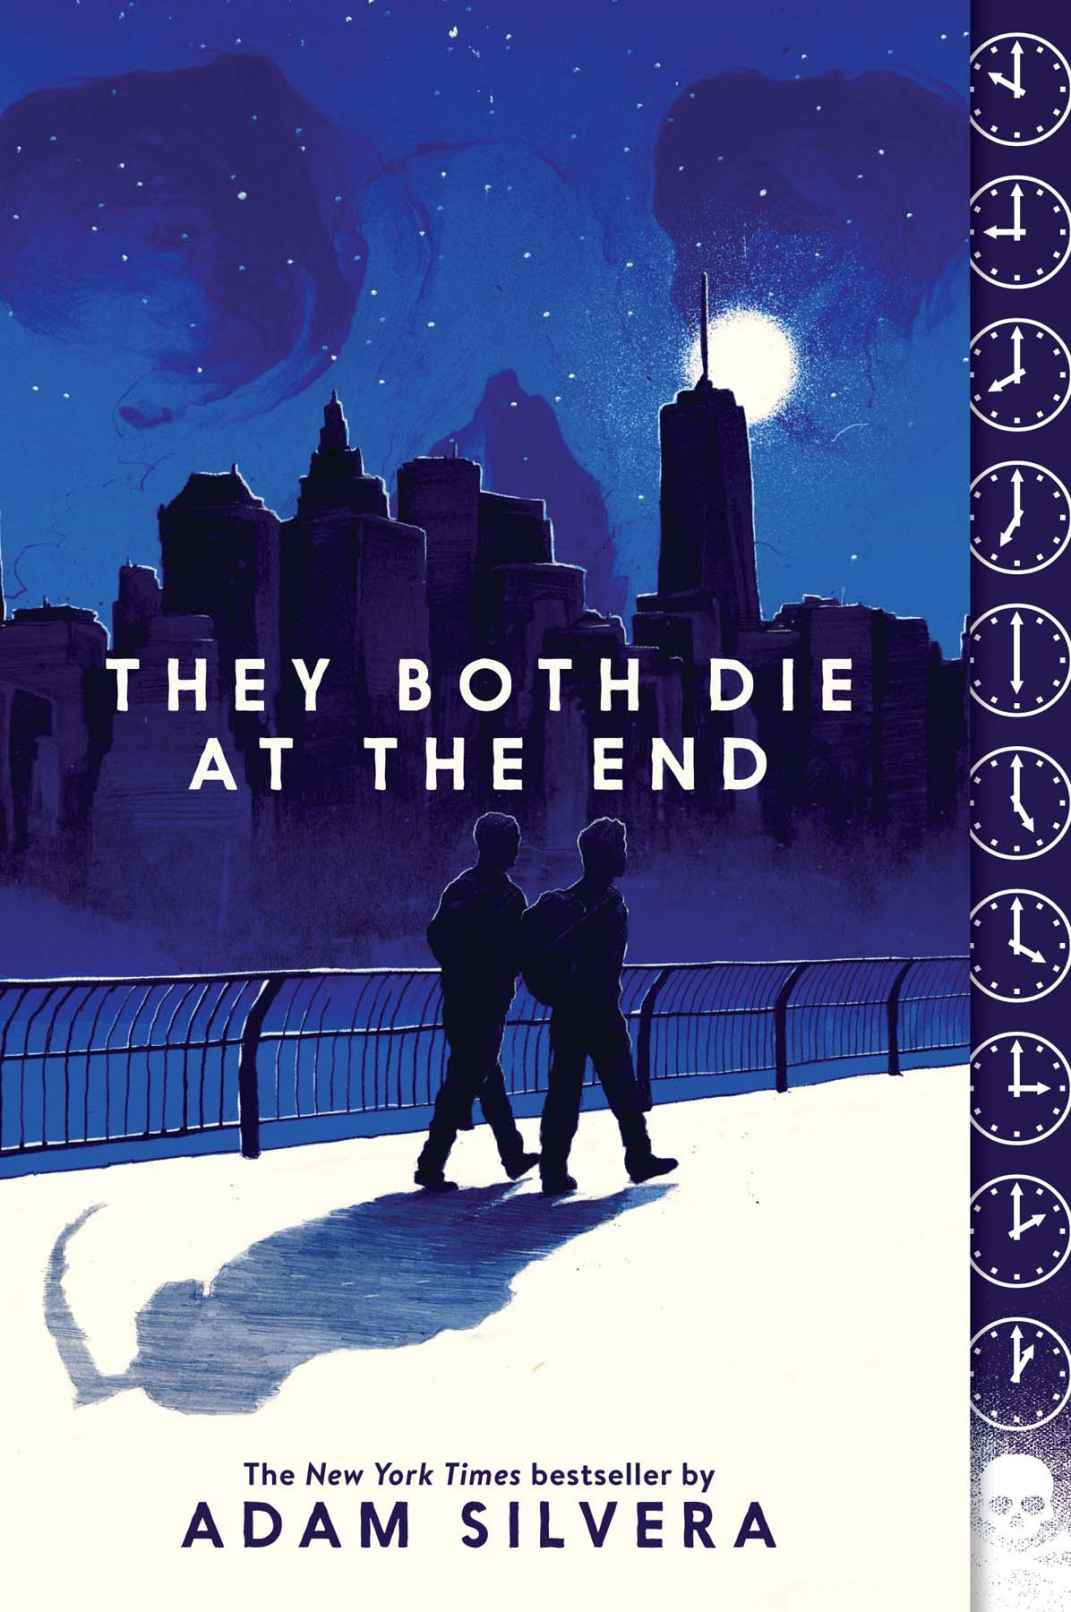 📖 Novel of the Week: They Both Die at the End by Adam Silvera